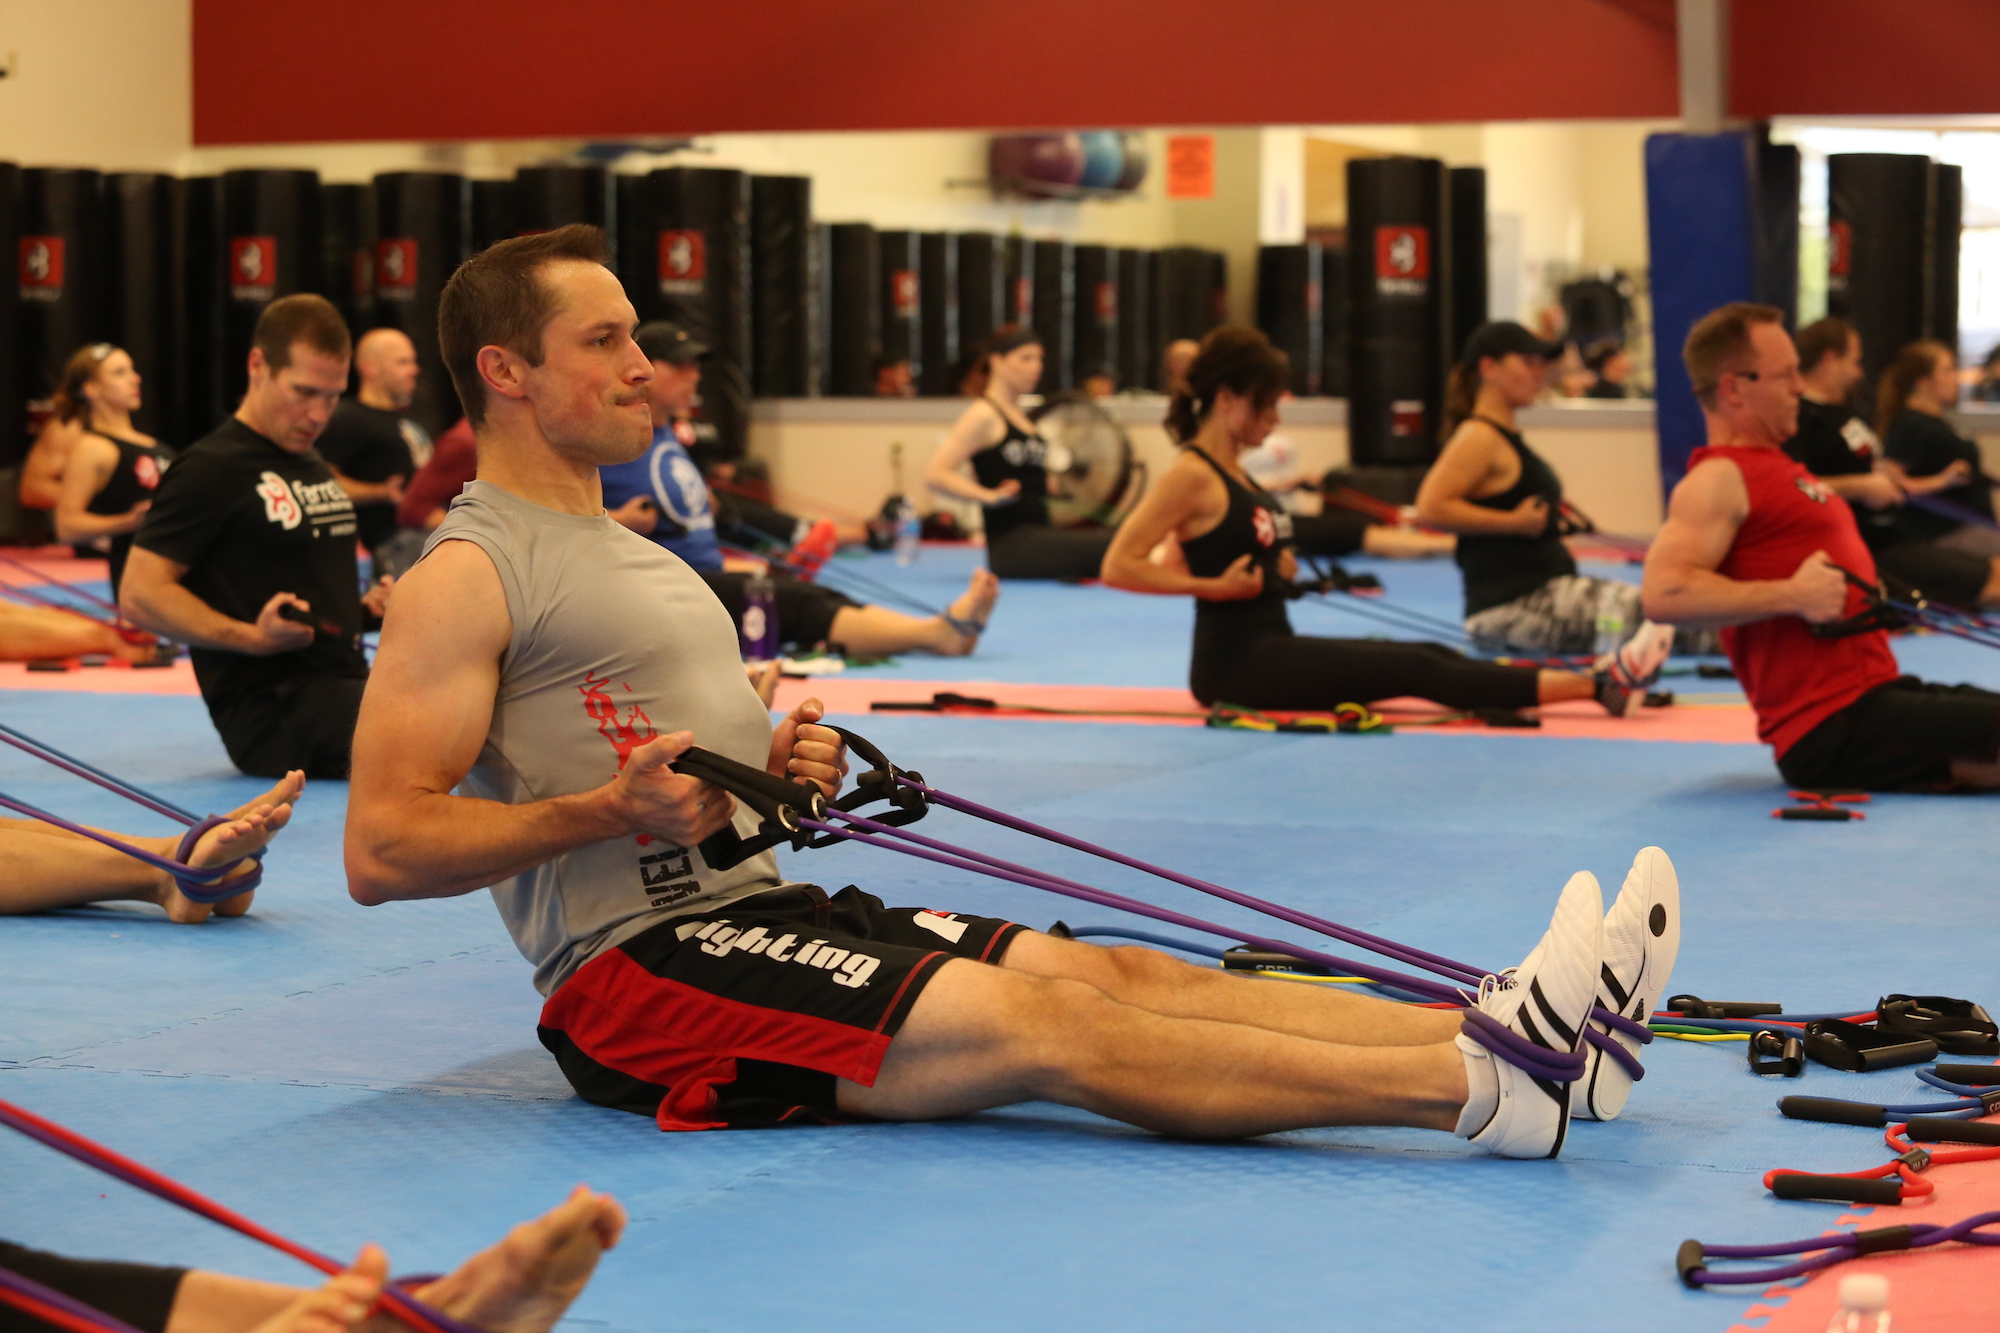 Man Strength Training using resistance bands